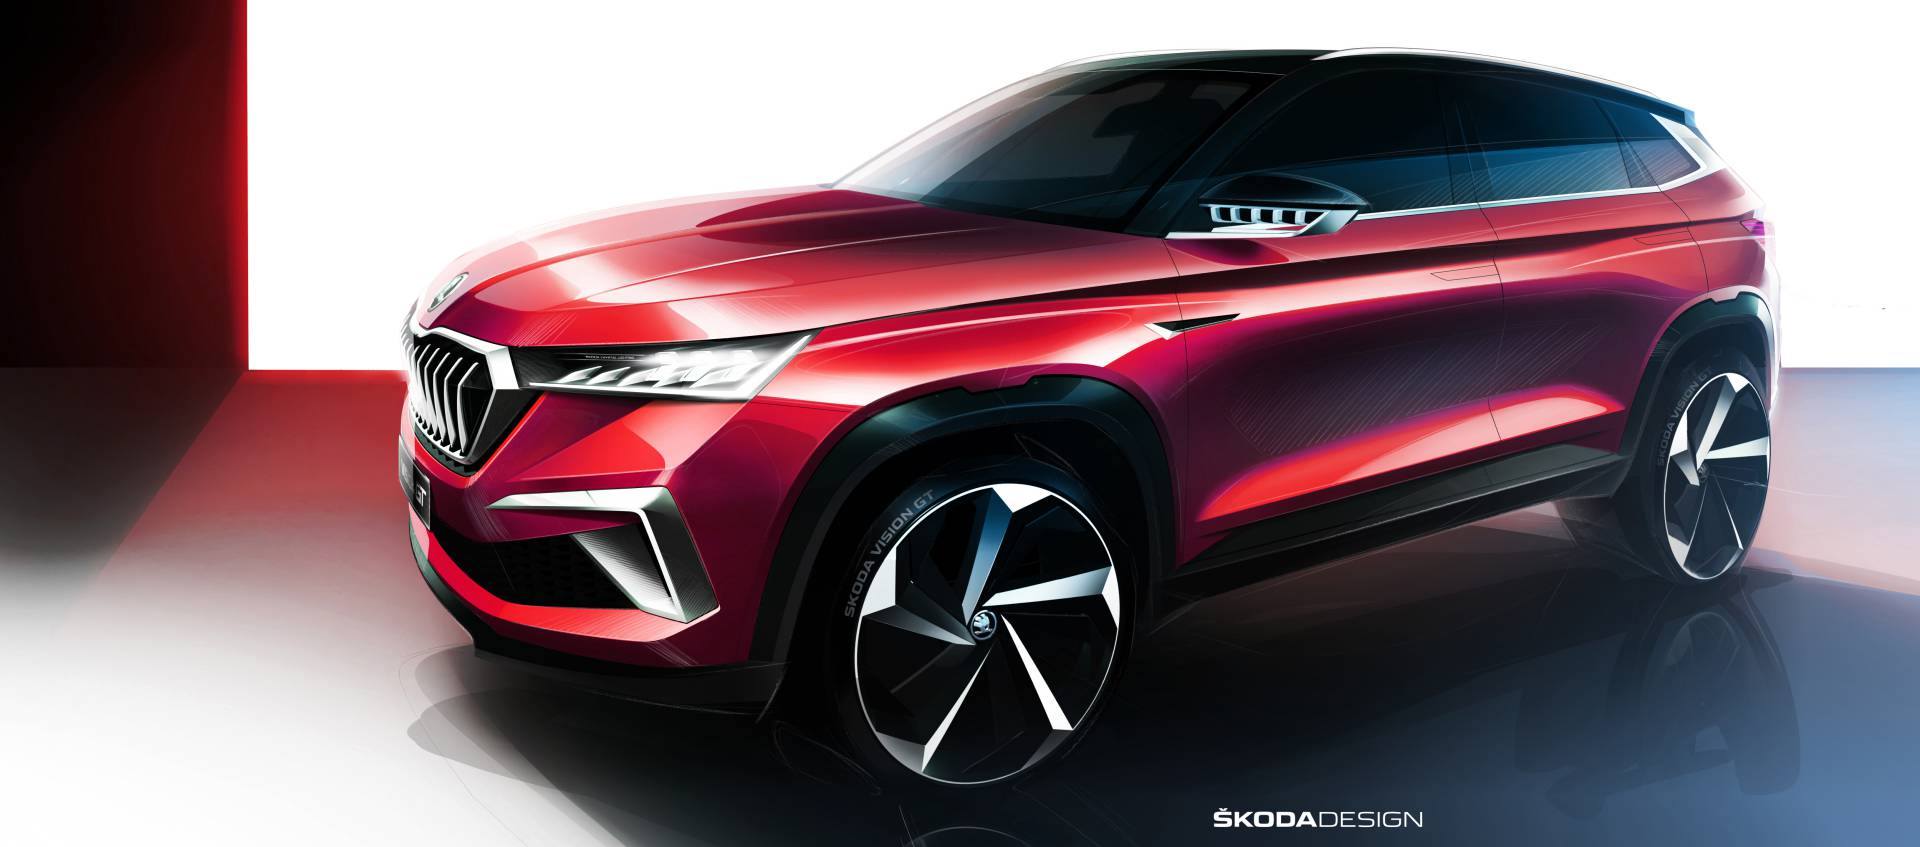 It might sound funny, but someone over at Skoda must have decided that with the Kodiaq GT, the standard non-GT Kodiaq, the Karoq and the Kamiq, the Czech carmaker's SUVs somehow still remain underrepresented on the Chinese market